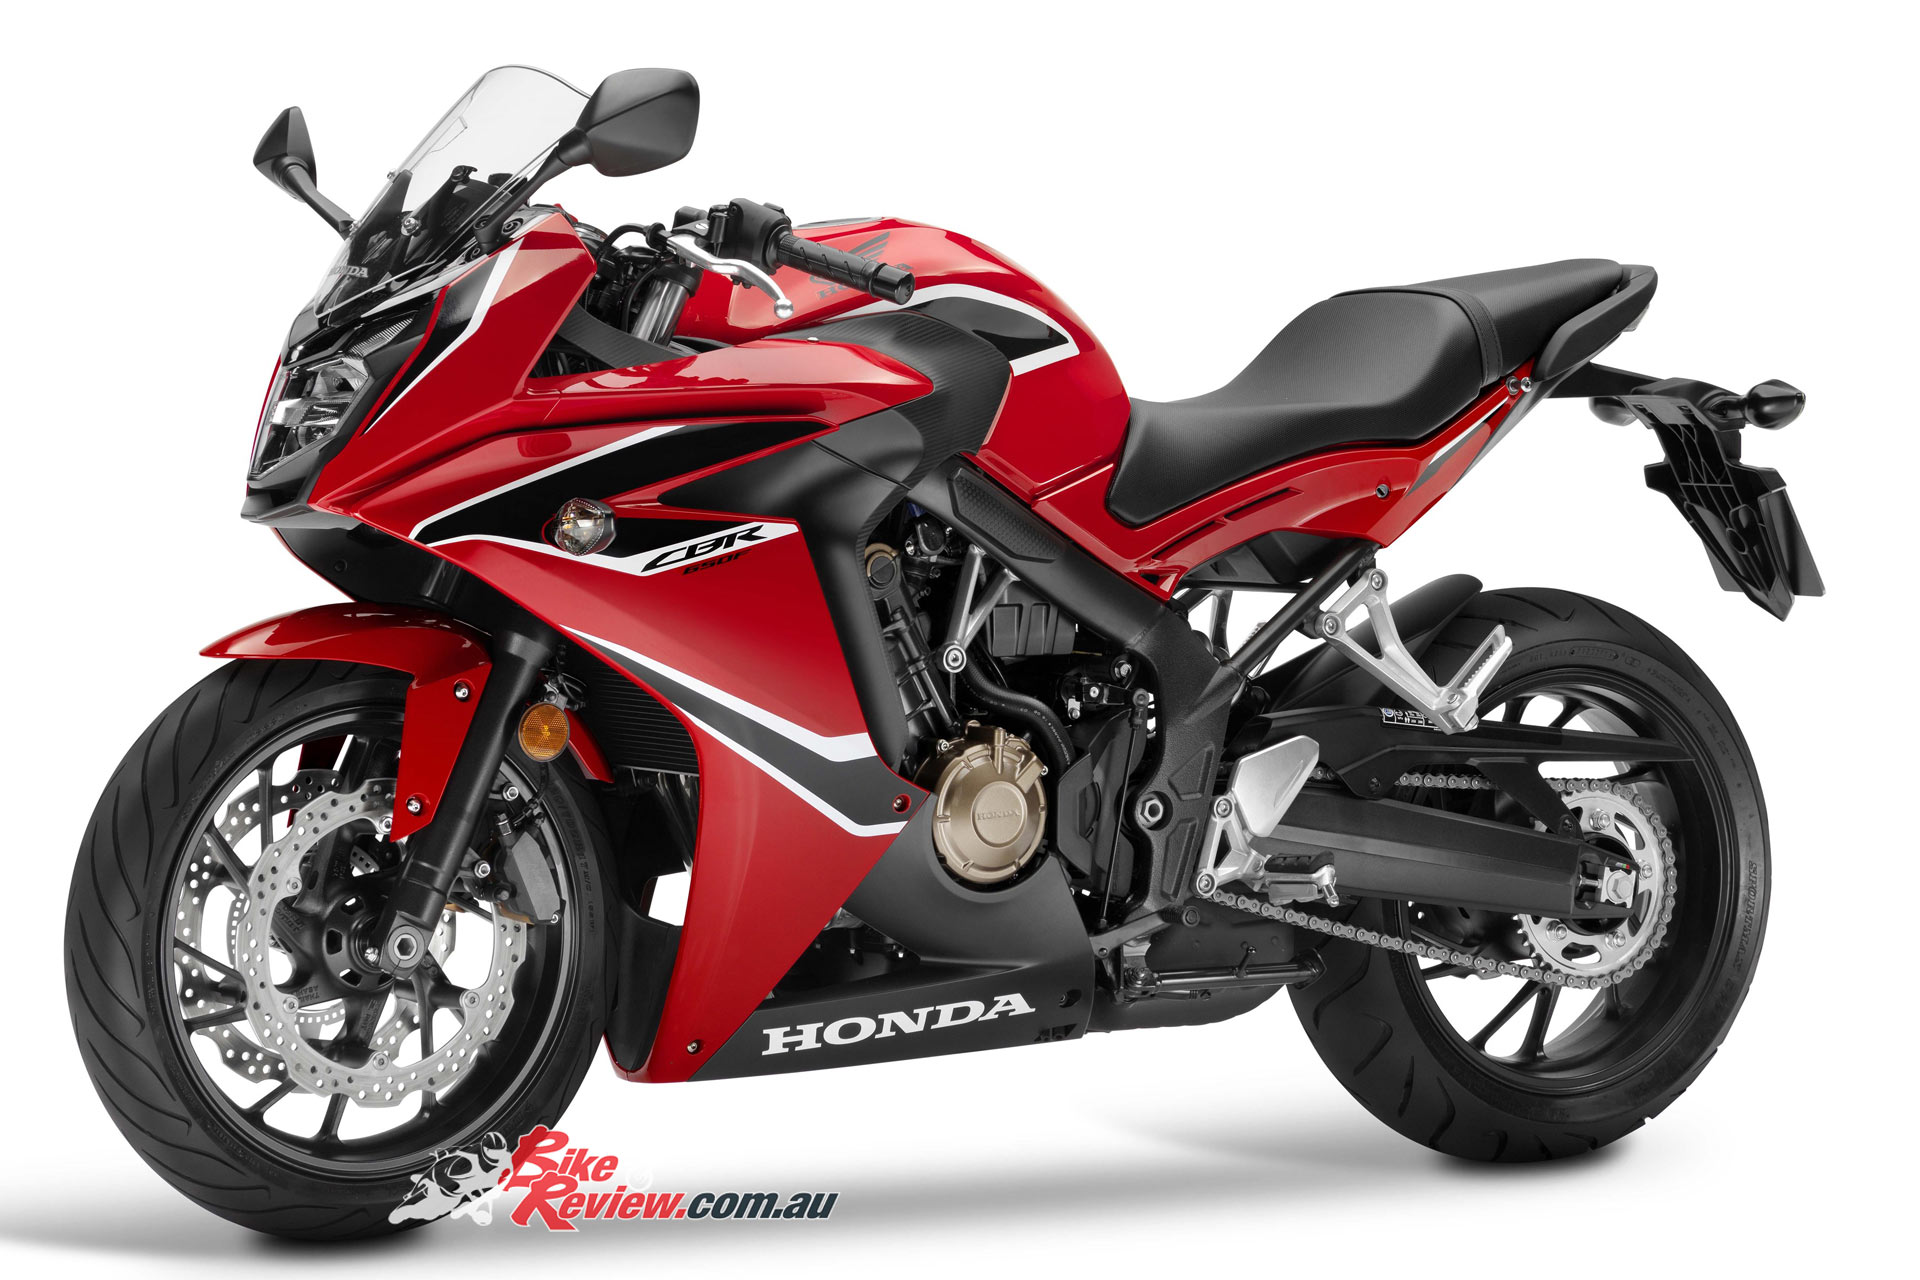 2017 Honda CBR650F Sportsbike Updated Bike Review